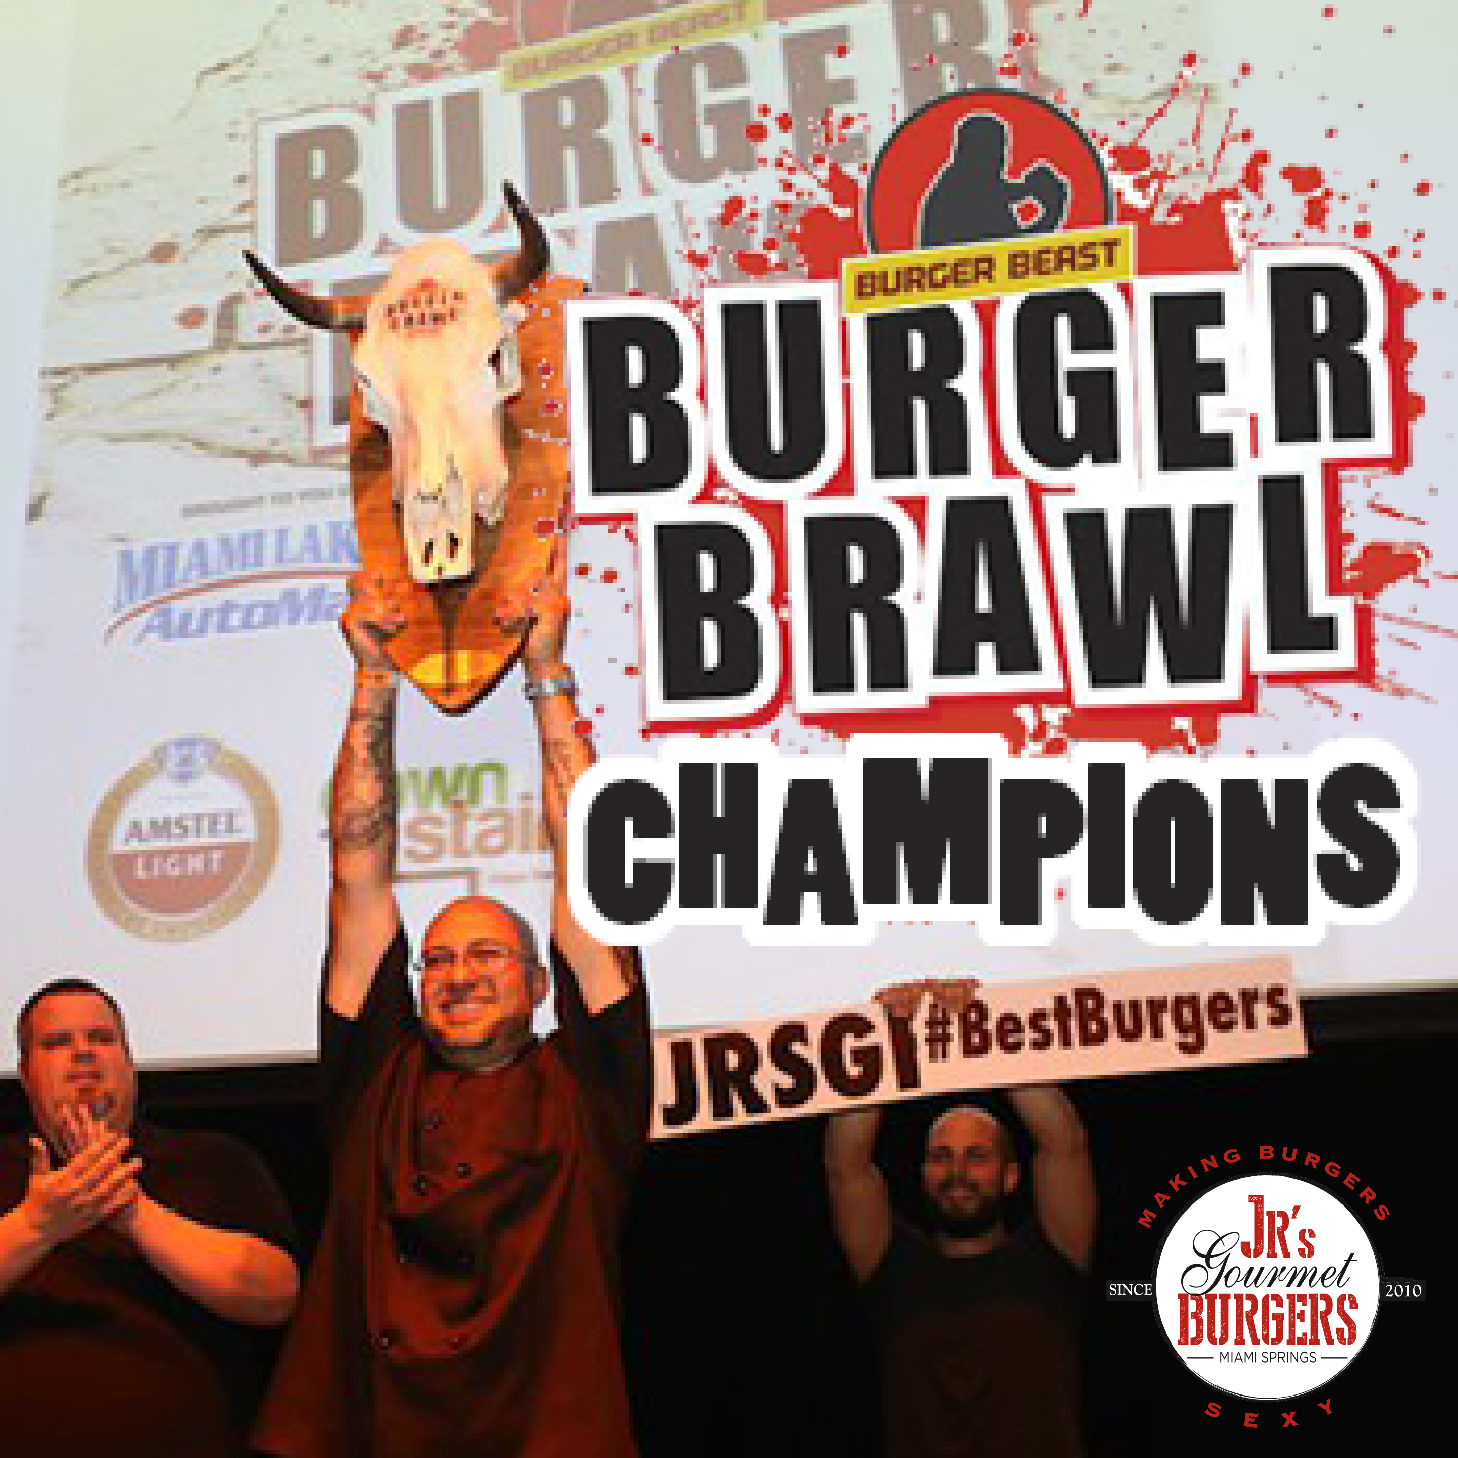 Burger Brawl Champ